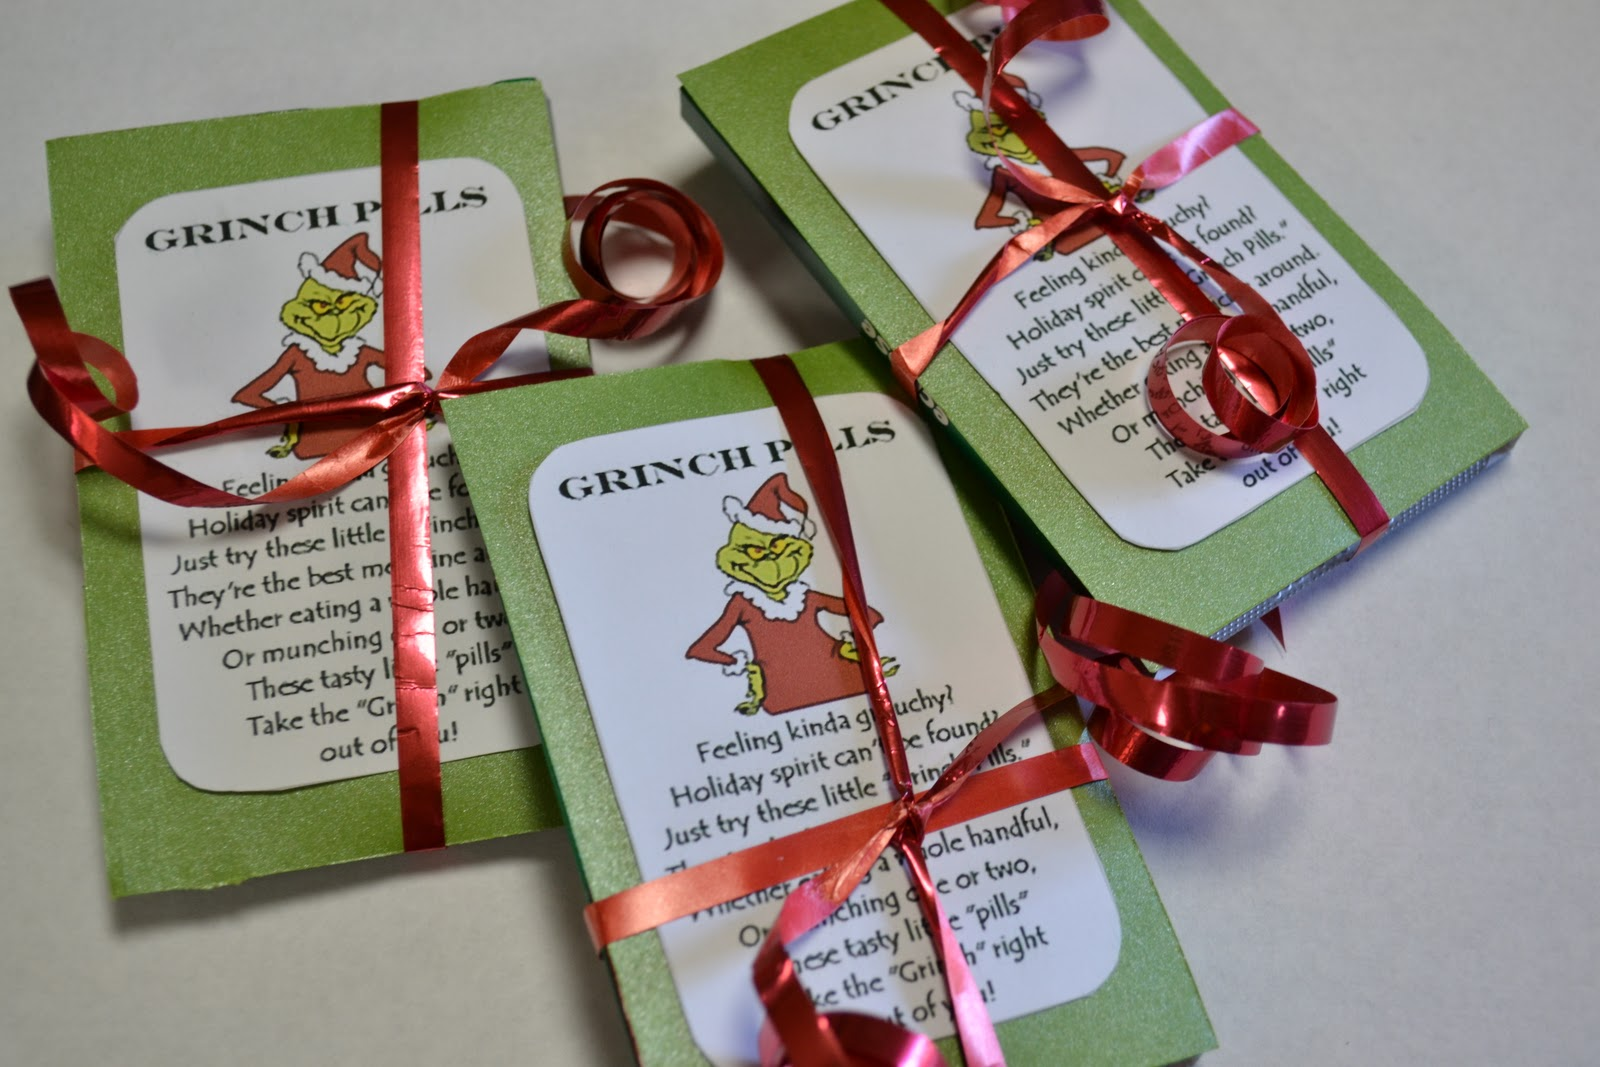 photo regarding Grinch Pills Free Printable called Those people 3 Girlies: Reindeer Poo and Grinch Products